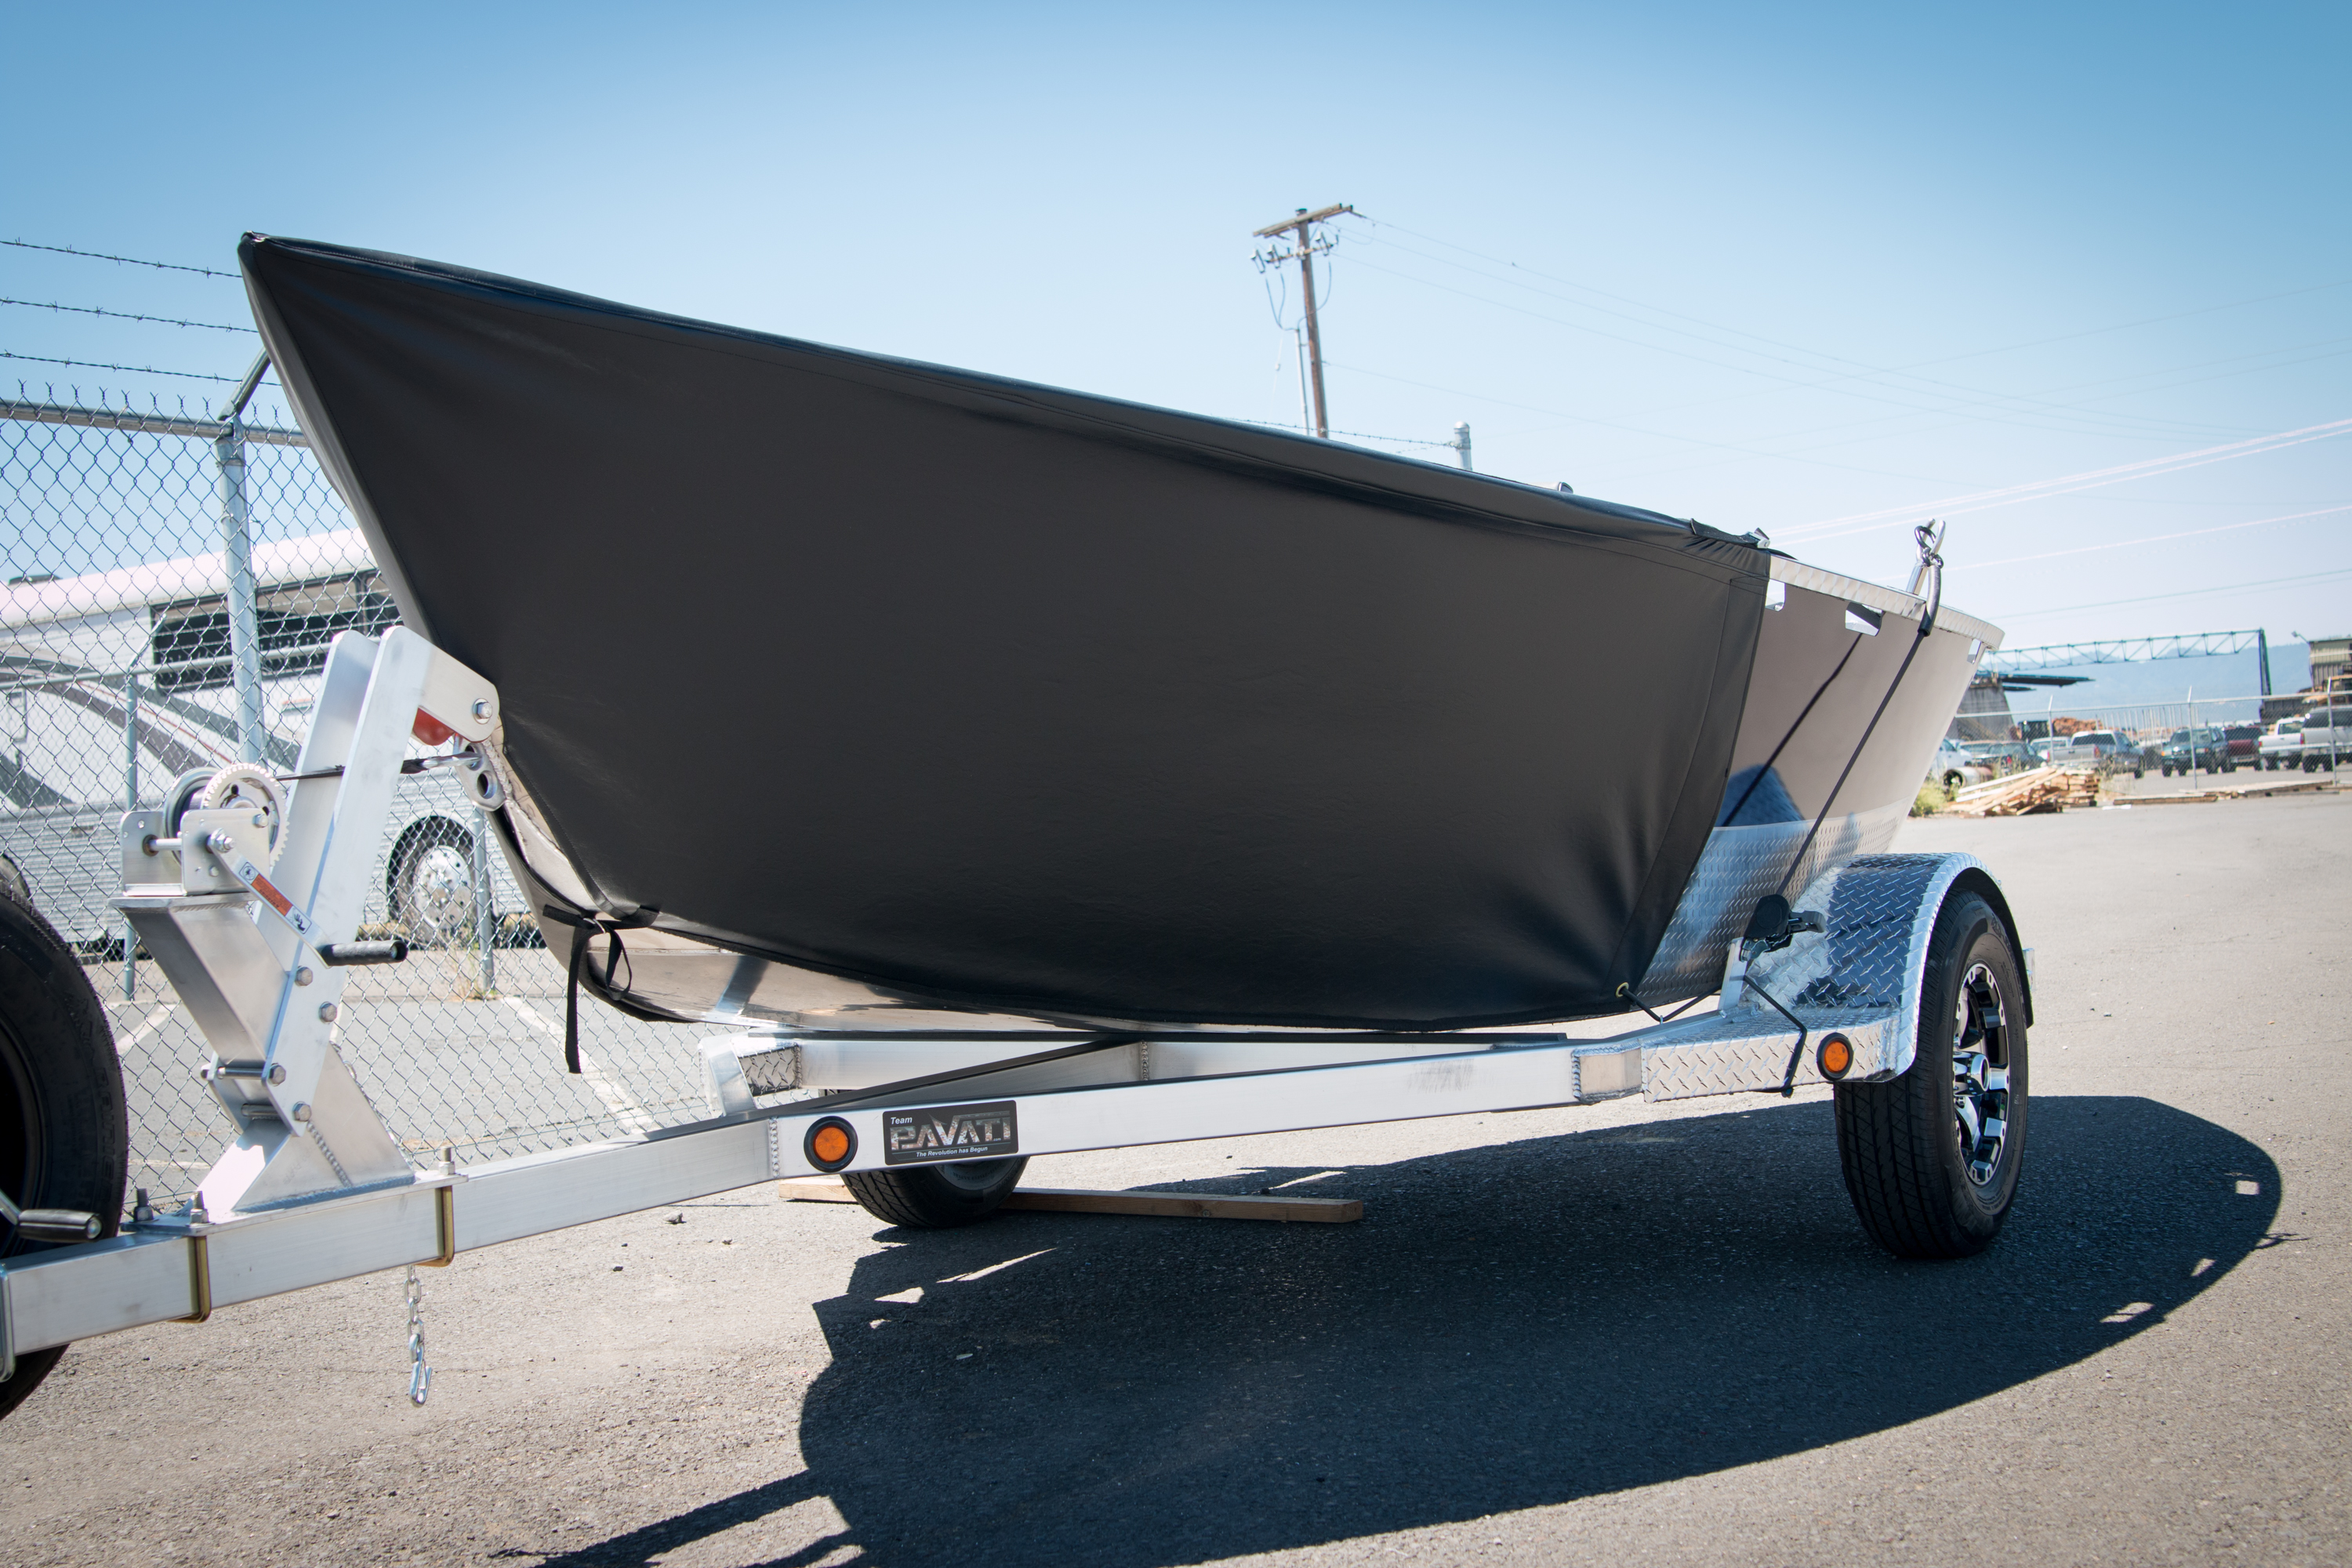 Black-Blue Pavati Marine Drift Boat with Diamond Plating Loaded Up Onto the Trailer